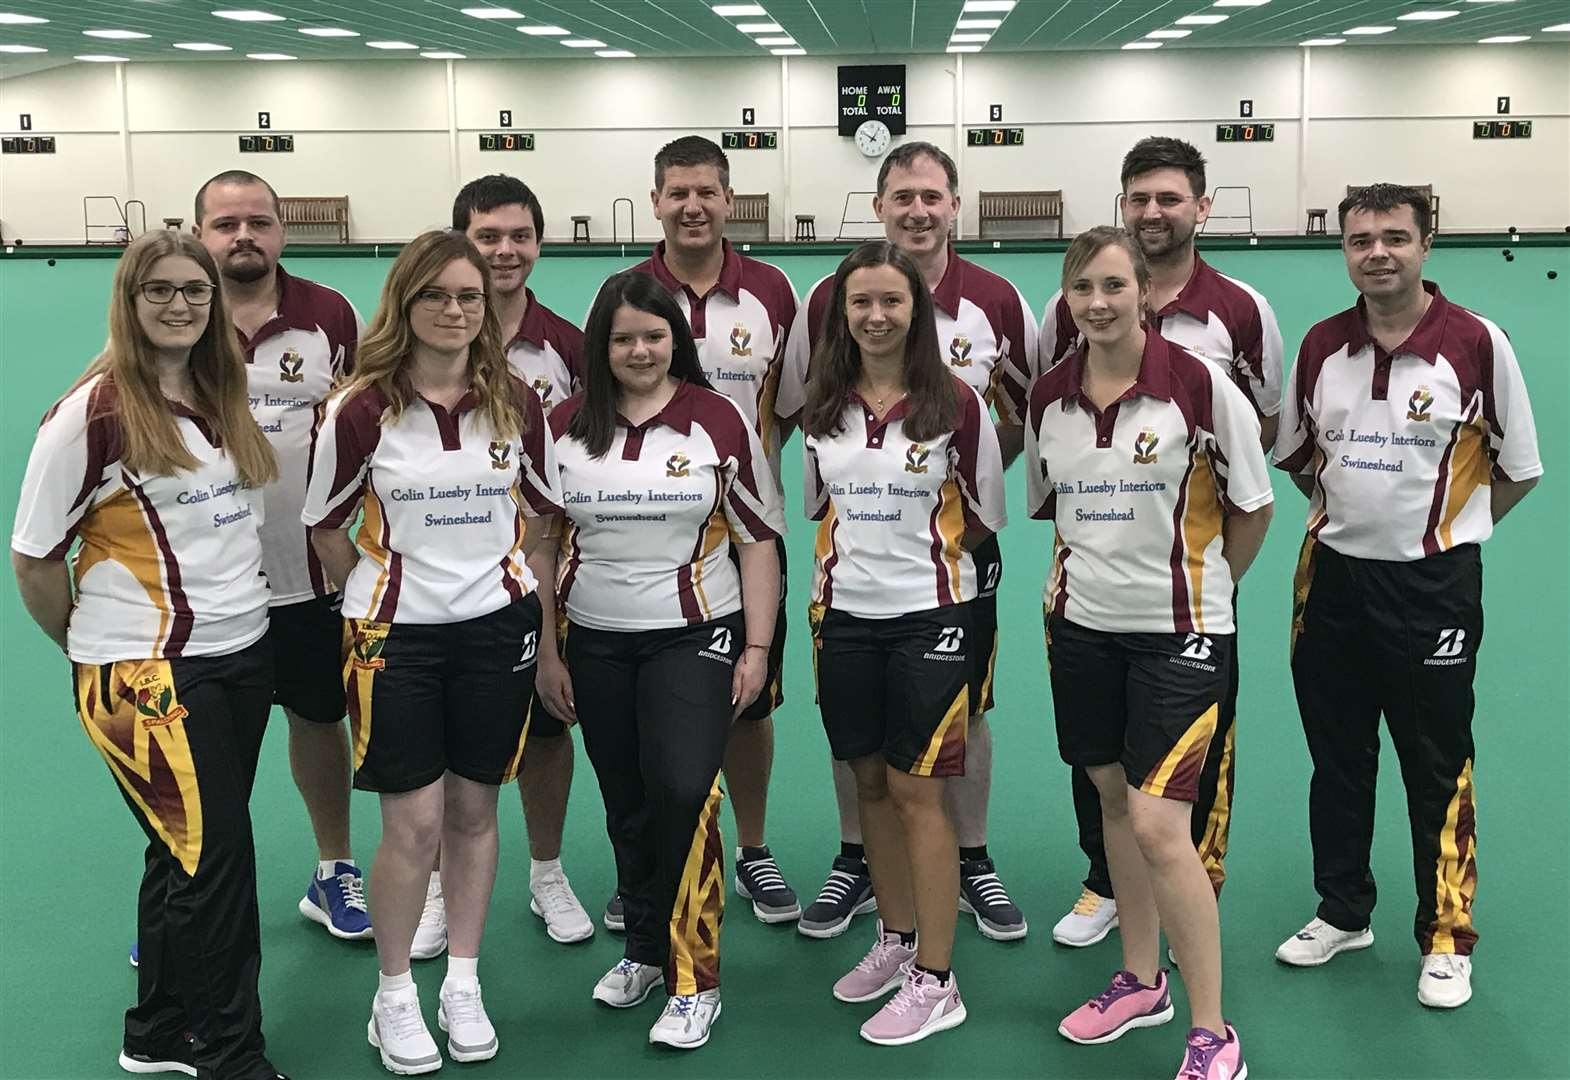 BOWLS: Defeat for mixed team but ladies dominate